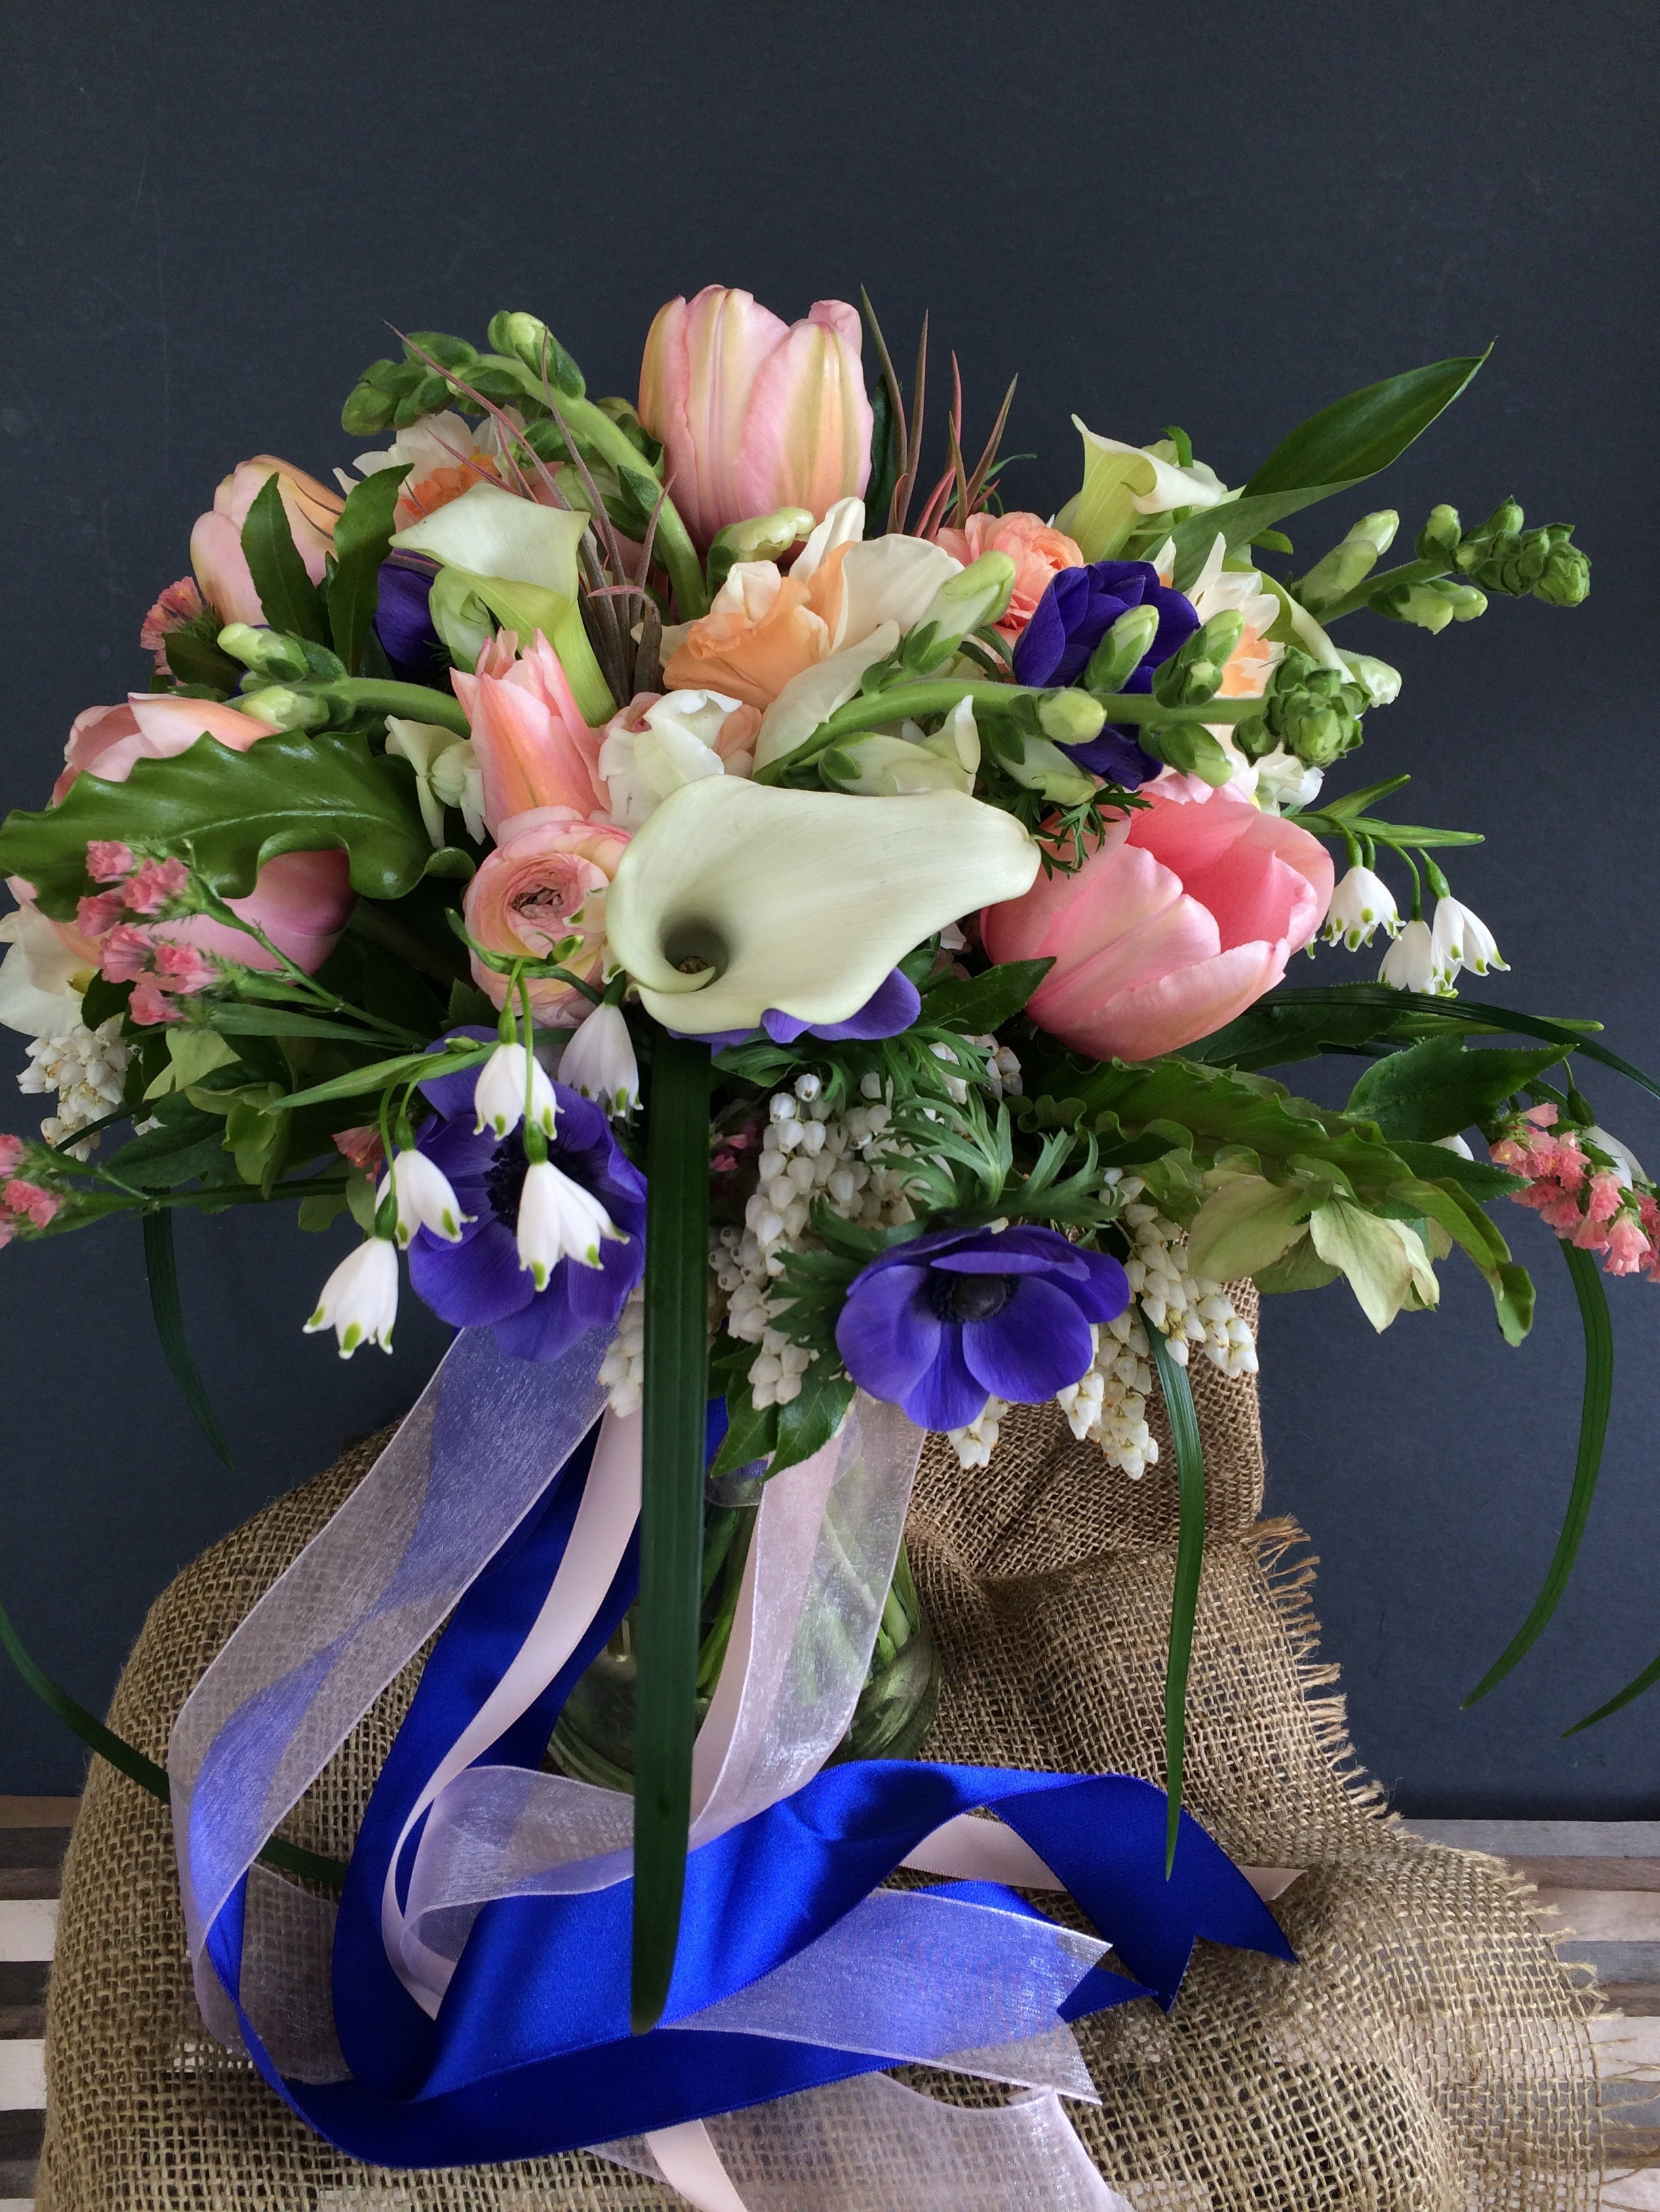 An early spring bridal bouquet of french tulips, peony, anemone, calla lilies and snow drops